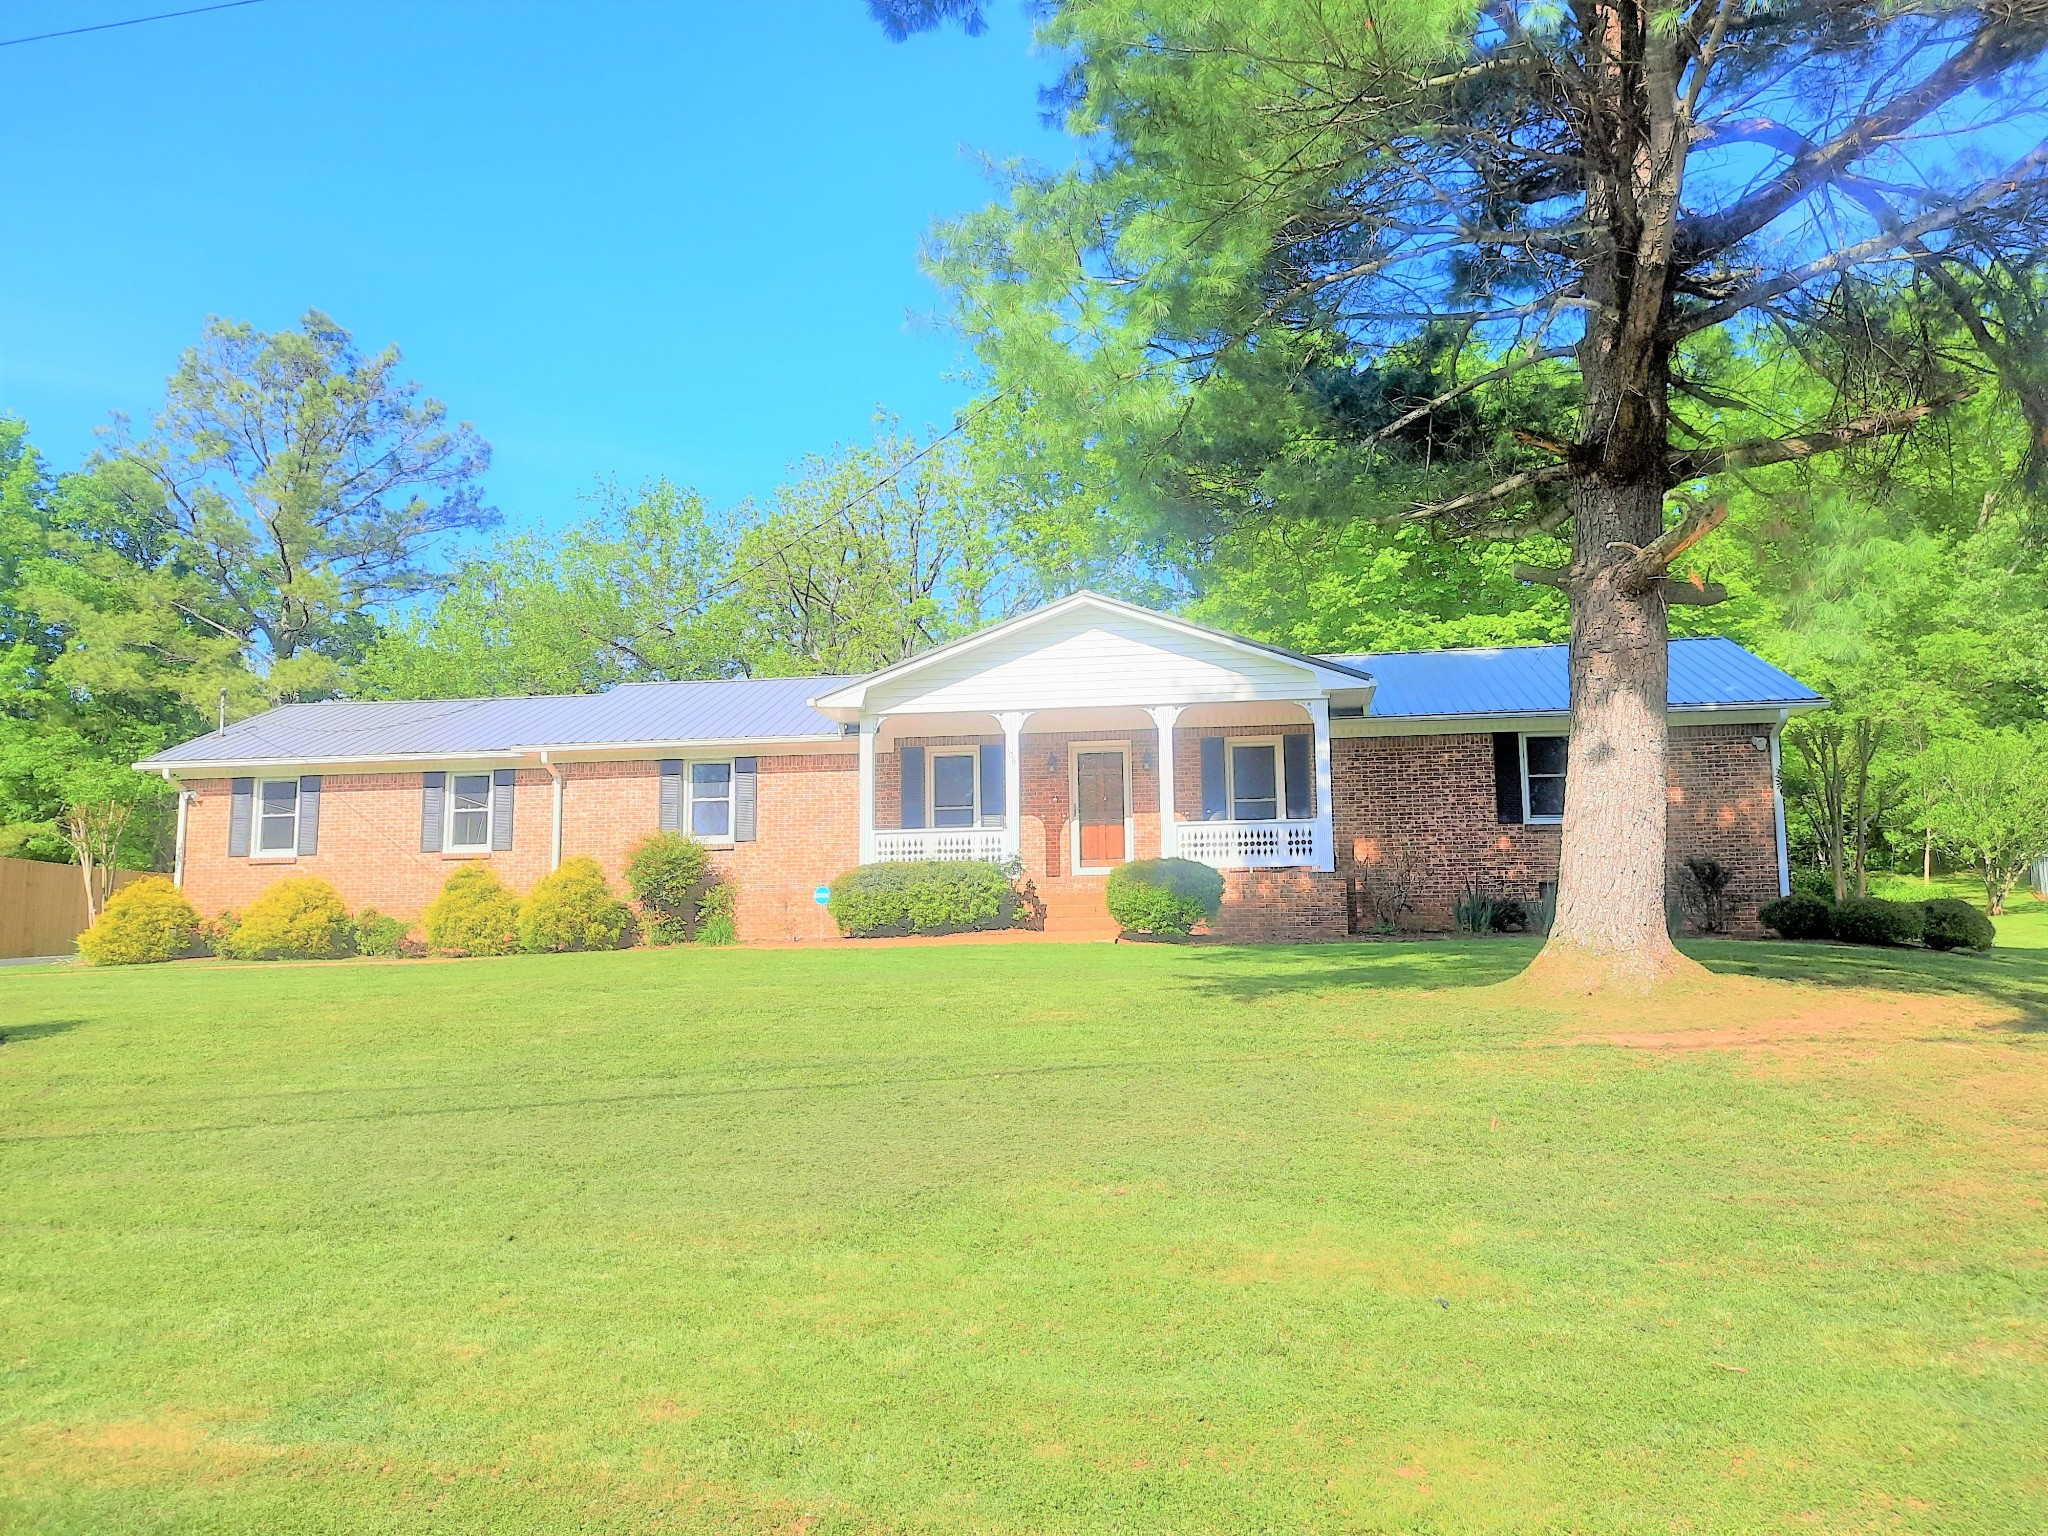 106 Skyview Dr Property Photo - Columbia, TN real estate listing